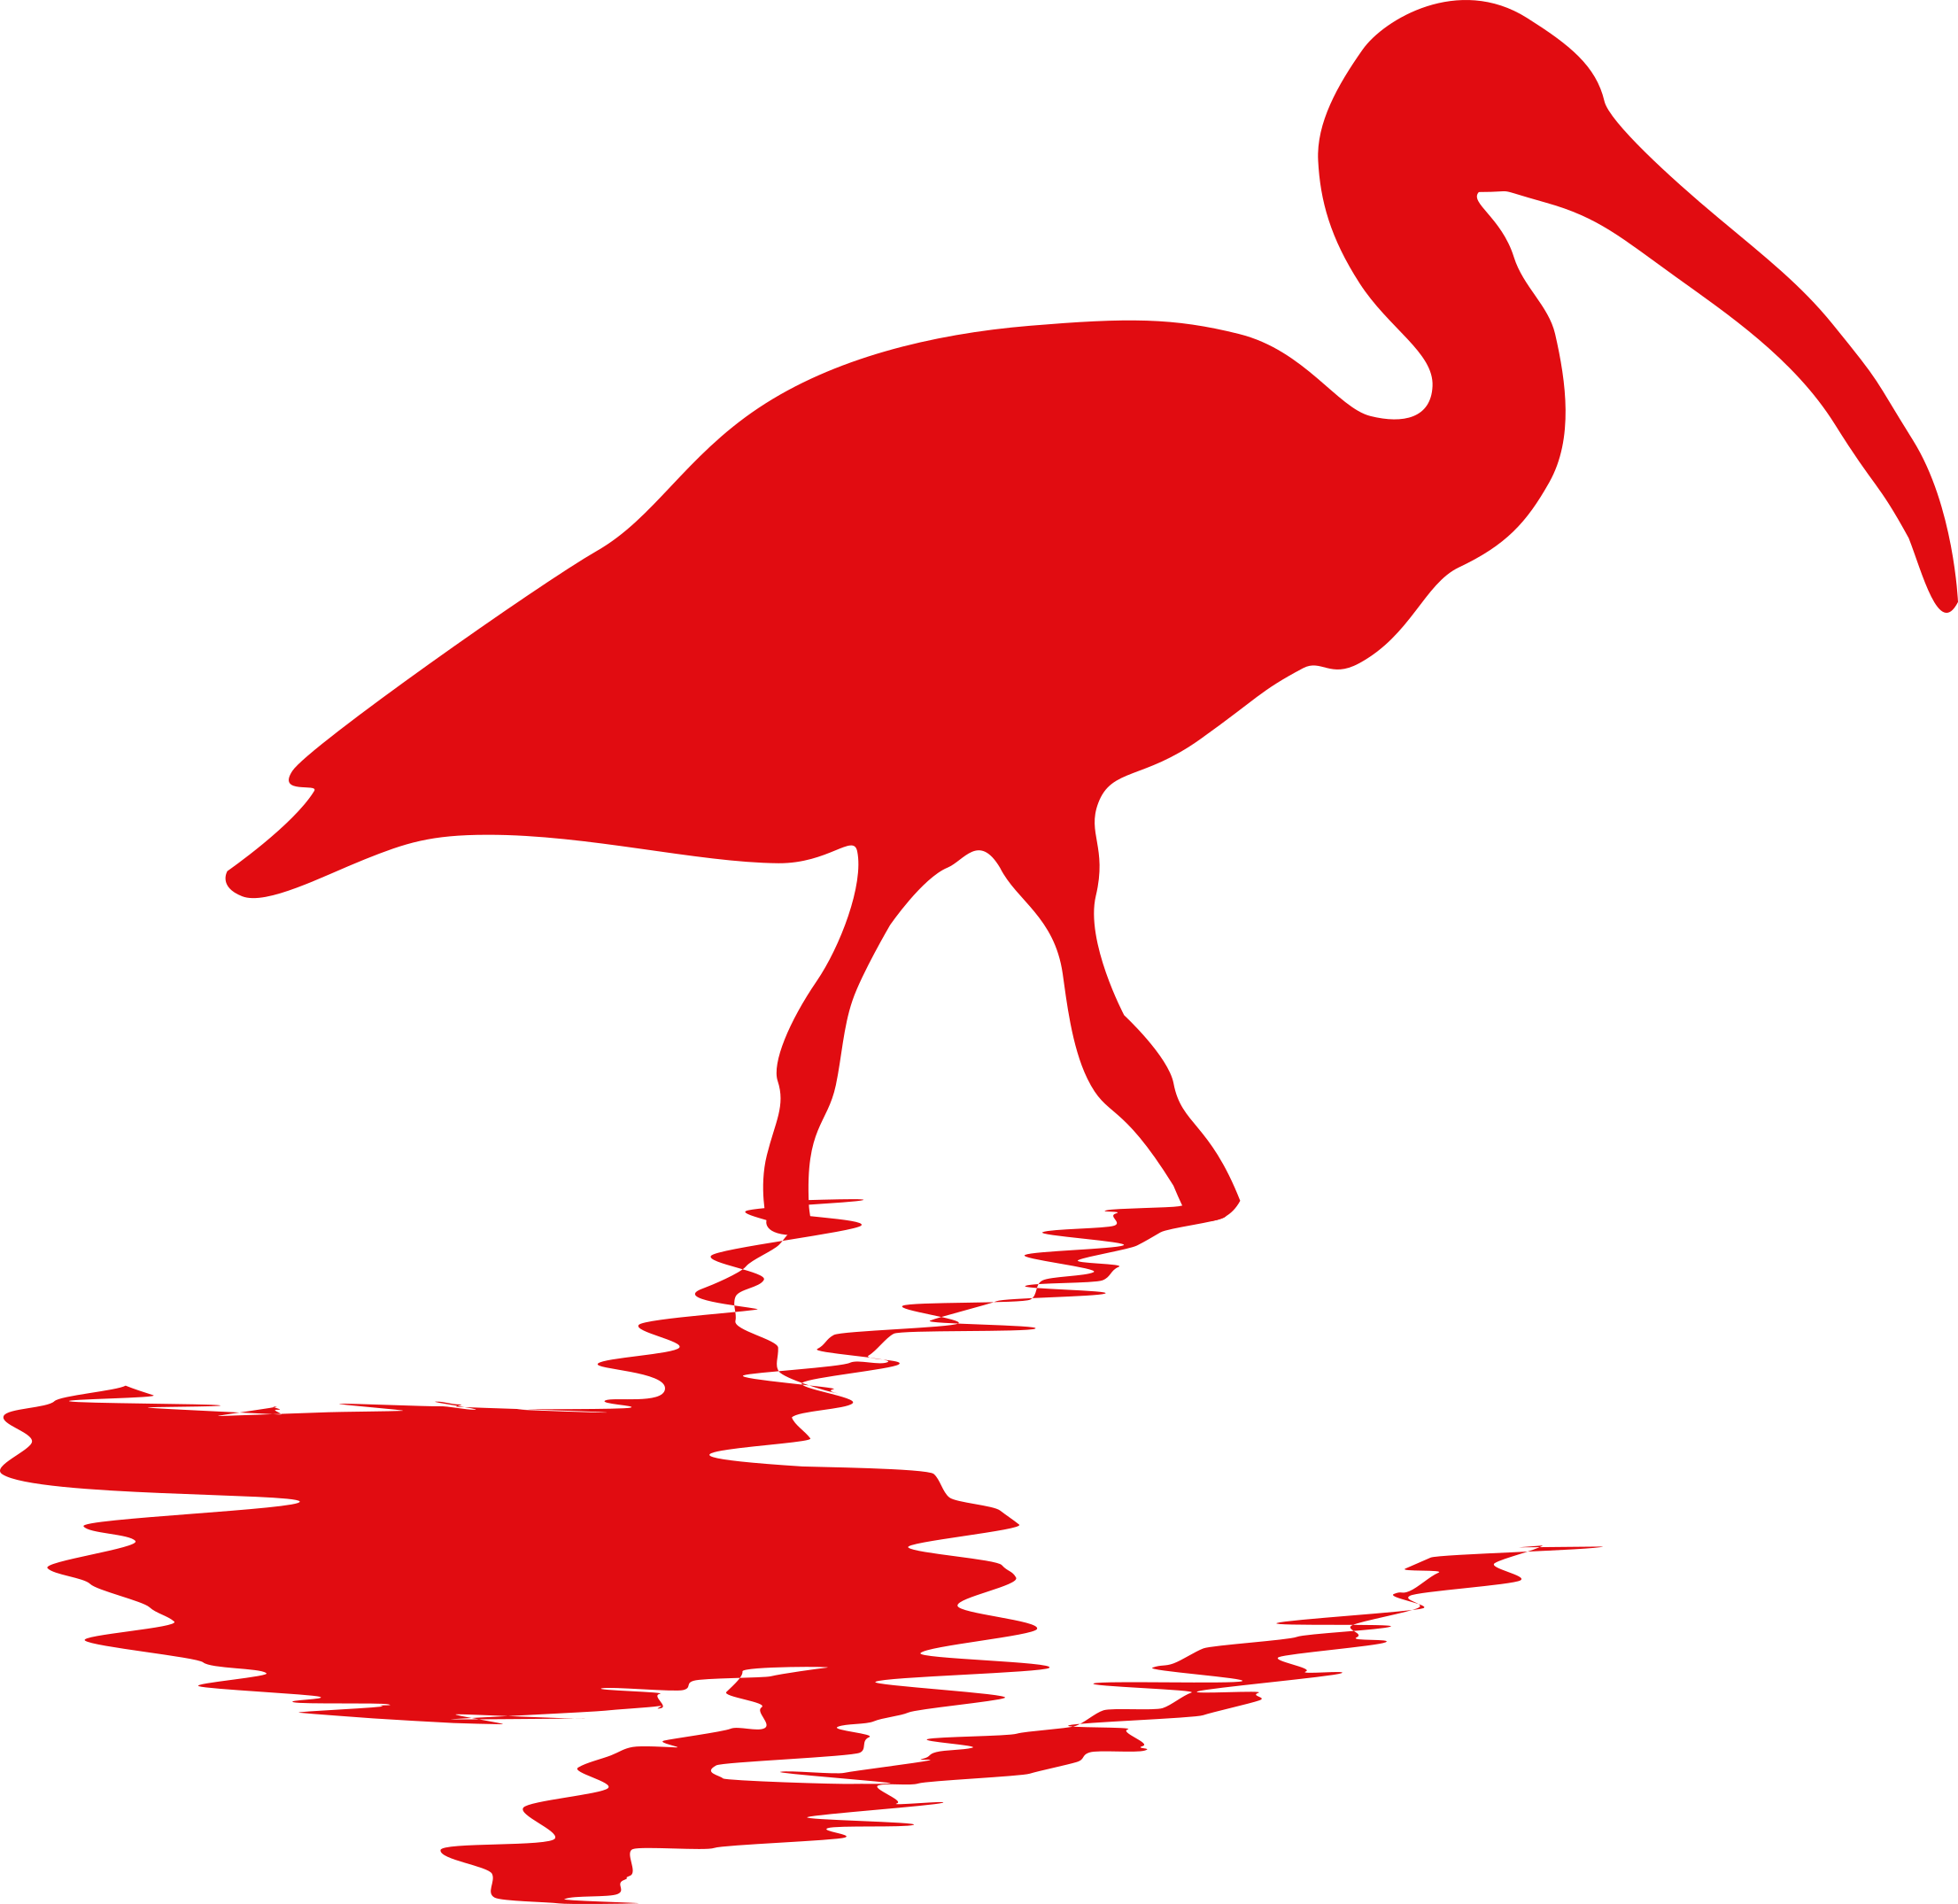 Ibis drawing red, Picture #2679343 ibis drawing red